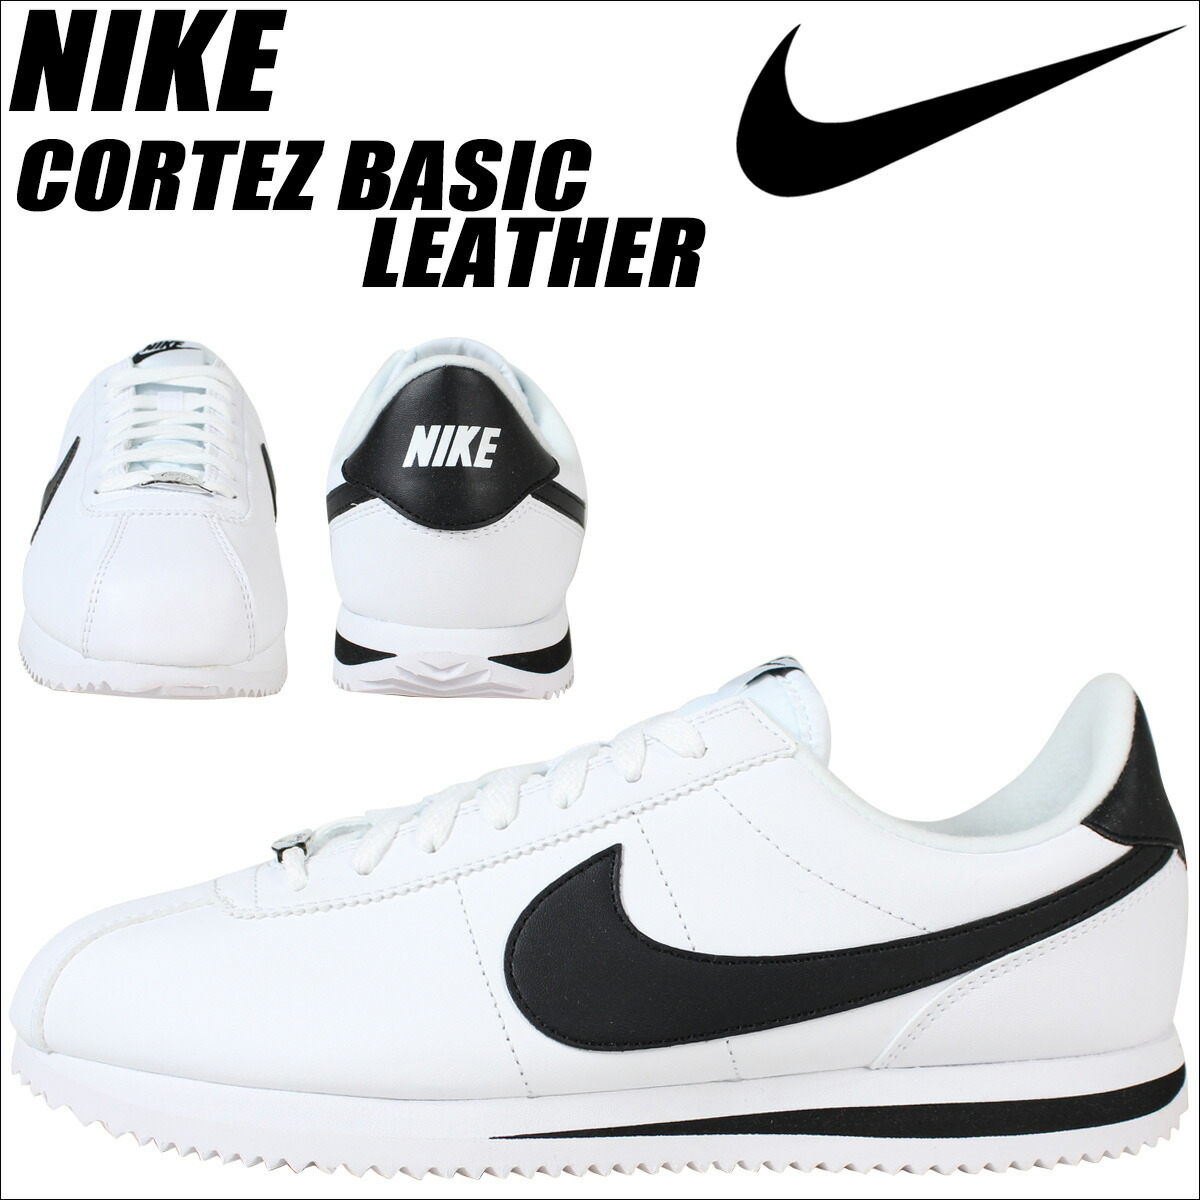 ... nike cortez shoes a365a 3c5f6  new zealand the origin of the name comes  from the greece myths of one jeff johnson 487d6012d